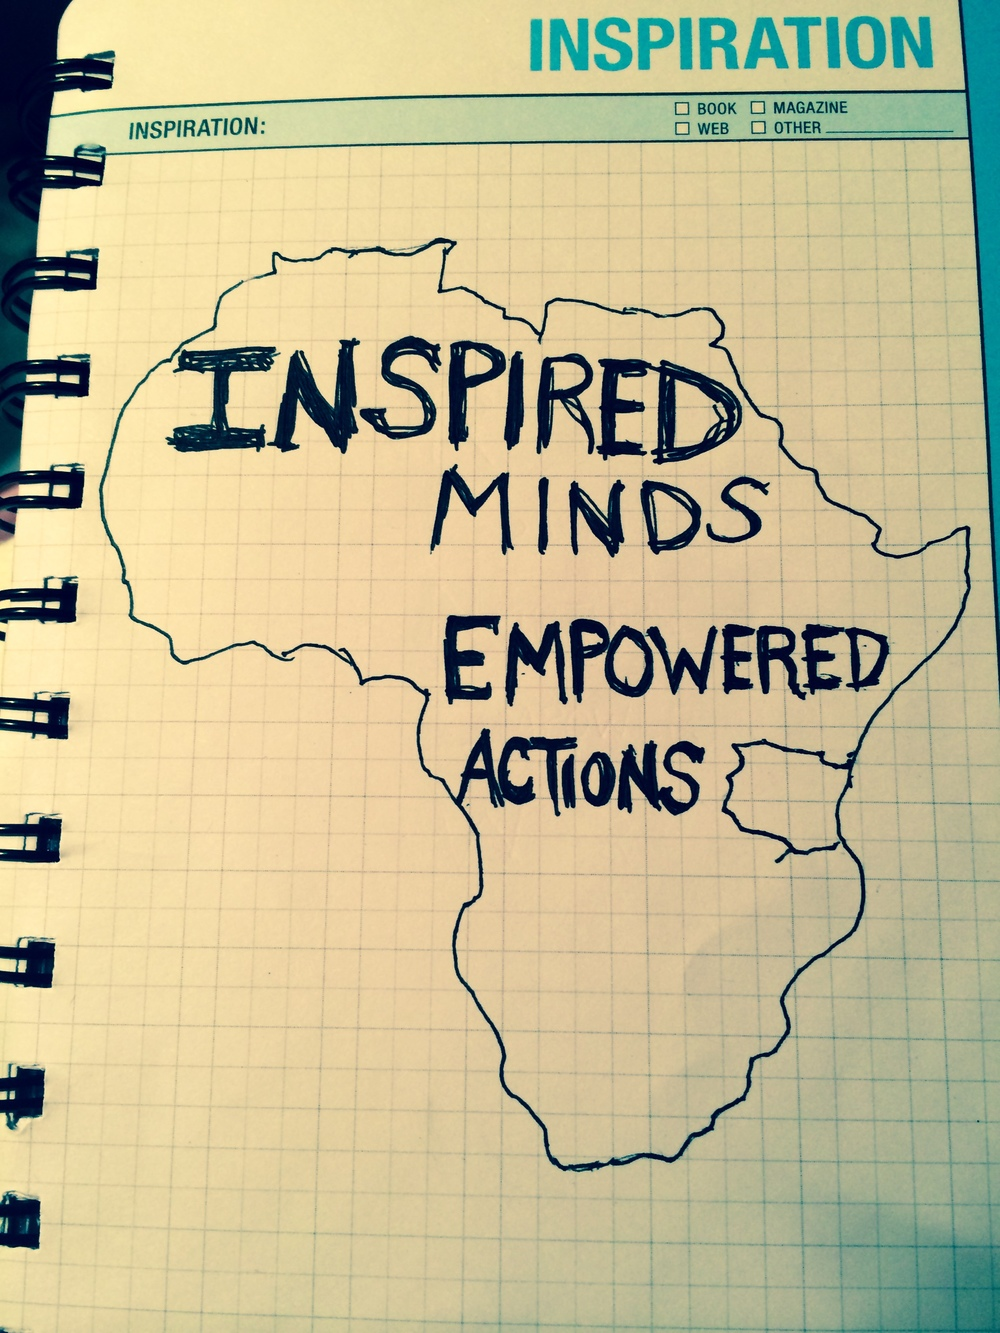 Inspired Minds. Empowered Actions.